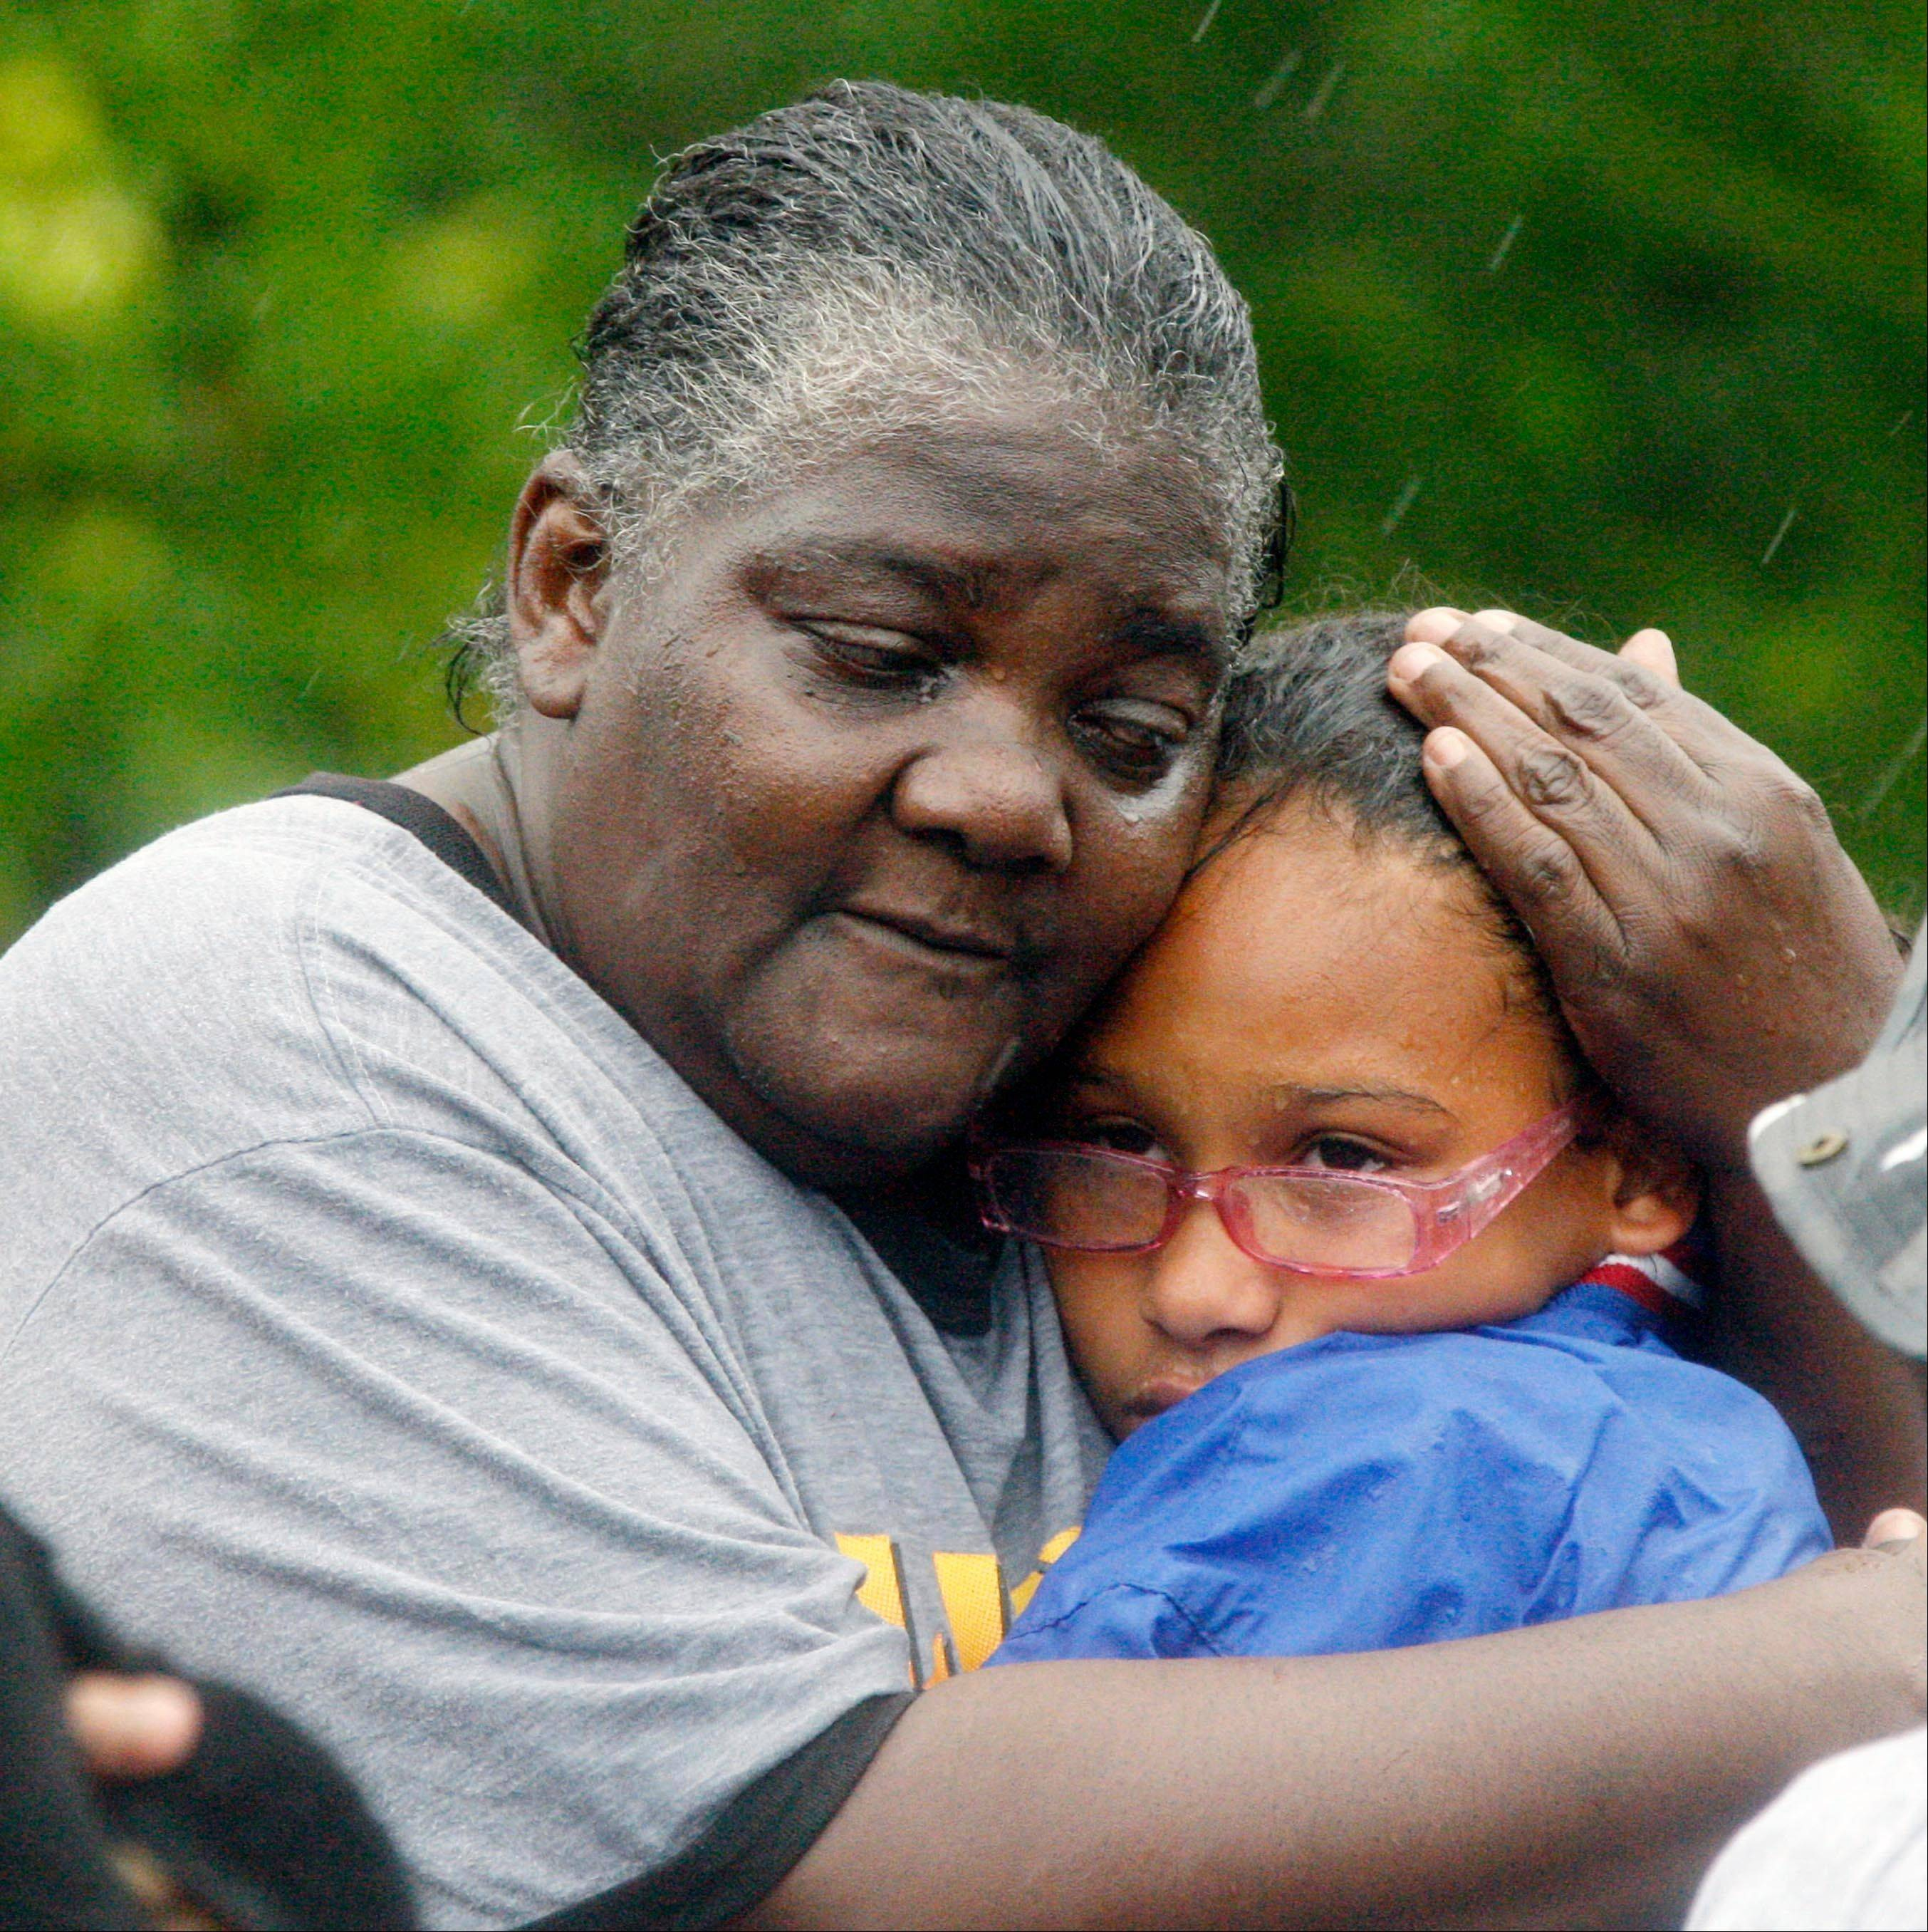 Danessa Lee, left, comforts her granddaughter Ashanti Lee, 12, after their family was rescued in Pearlington, Miss., by law enforcement officers and first responders using boats, Wednesday, Aug. 29, 2012, during the nonstop rain from Isaac. A number of residents of the small community were trapped by the rising waters and had be rescued or waited until the low tide when waters receded so they could walk out.